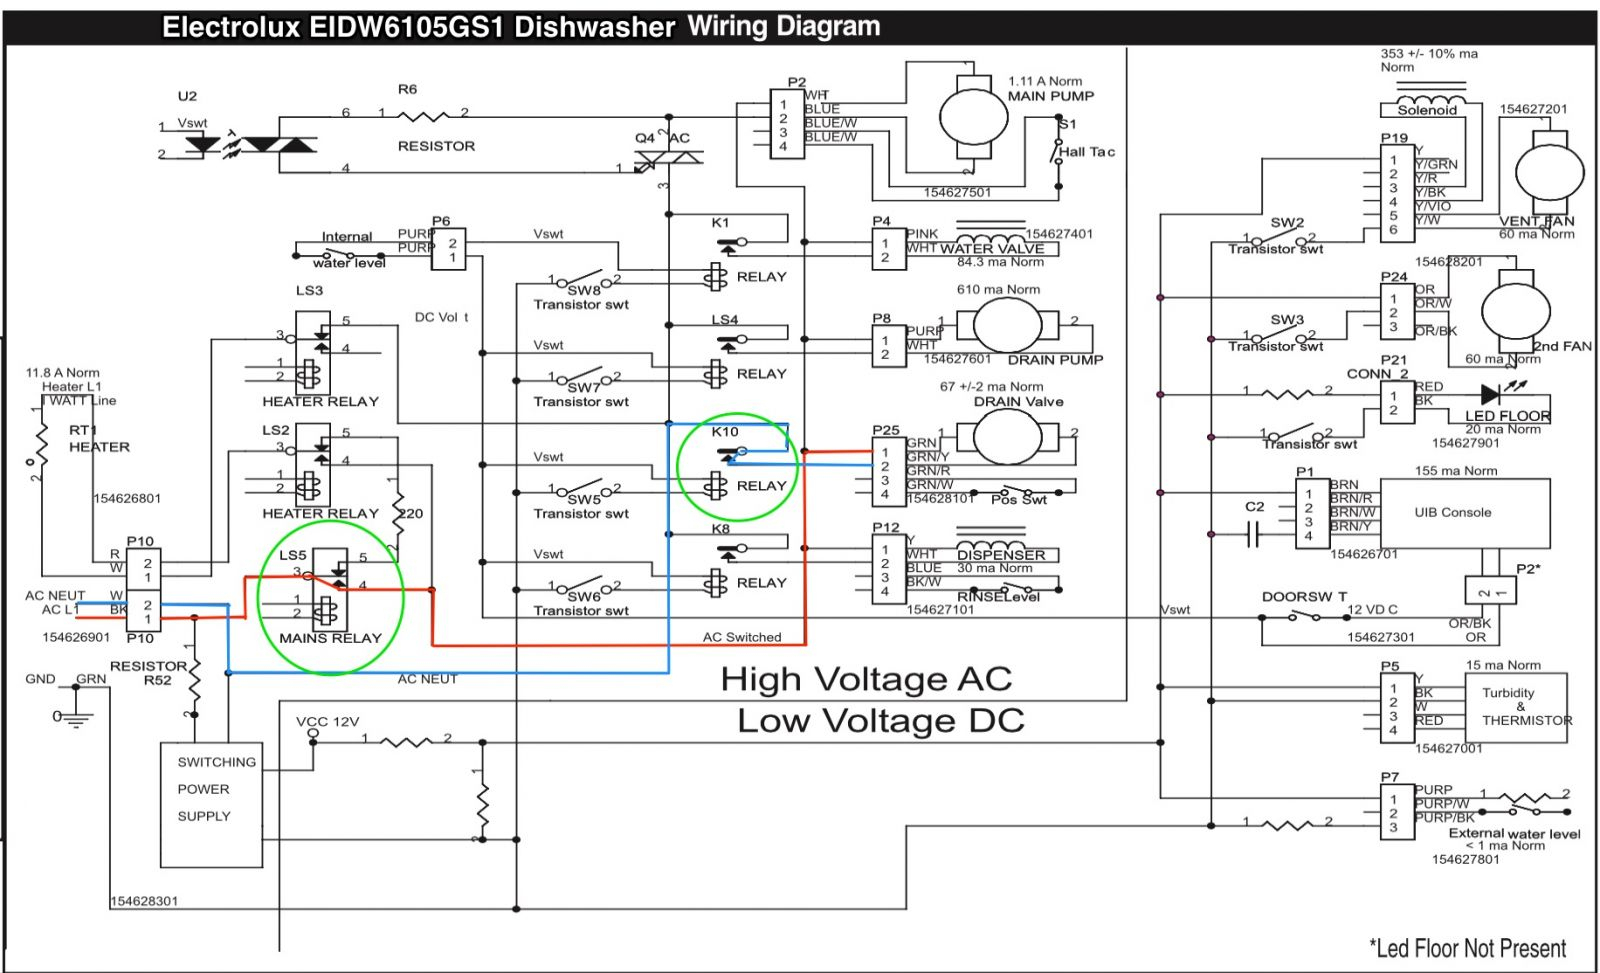 Electrolux Eidw6105Gs1 Dishwasher Wiring Diagram - The Appliantology - Dishwasher Wiring Diagram